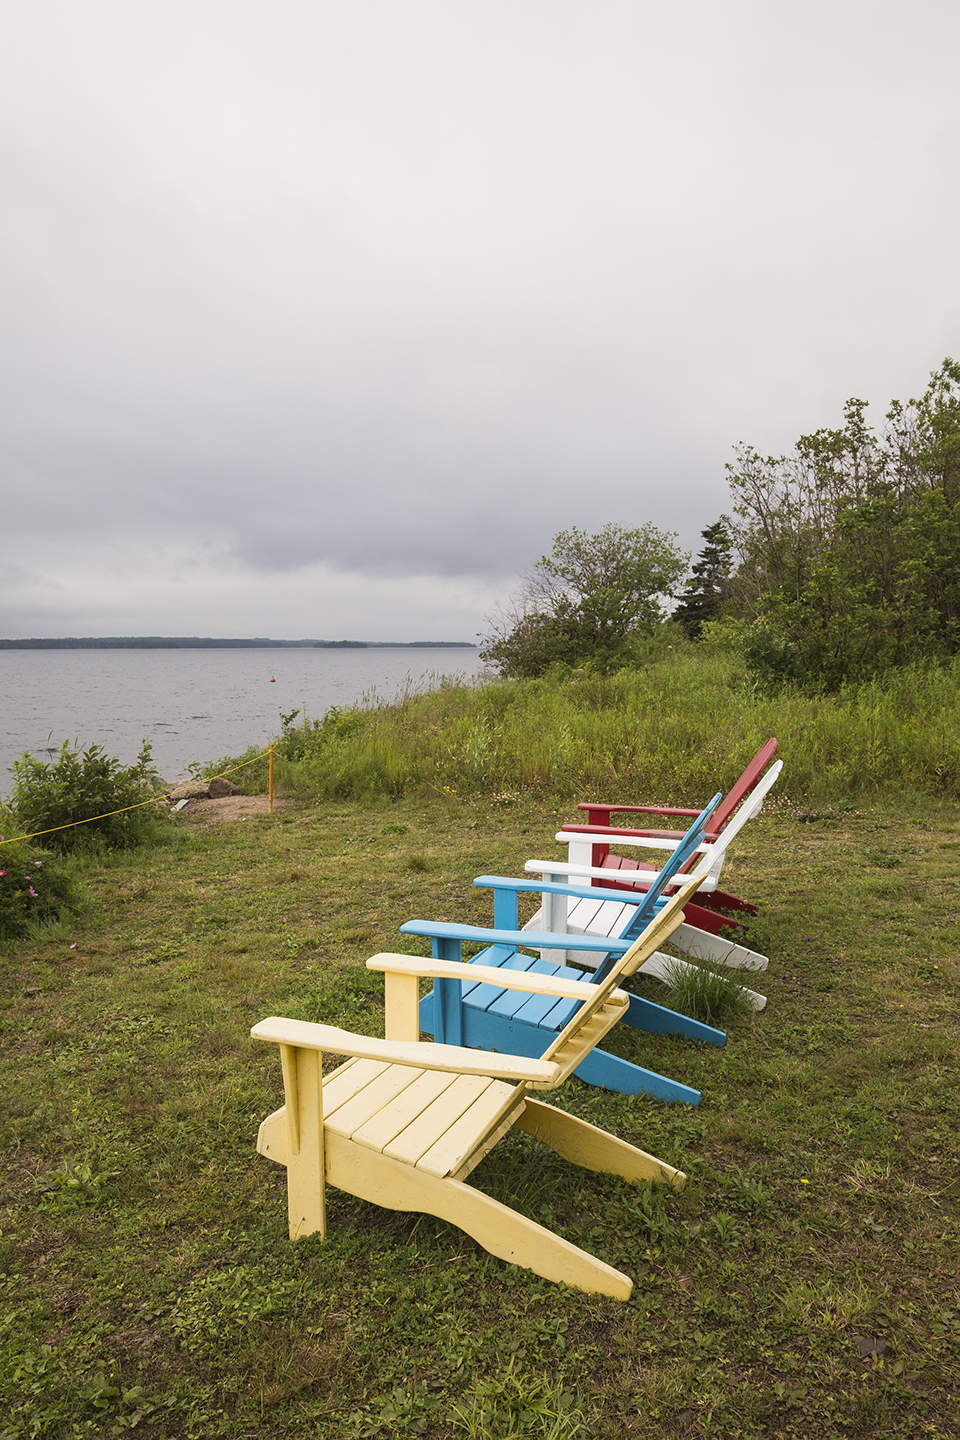 2_Adirondack-Chairs-Lake-Bras-d-Or